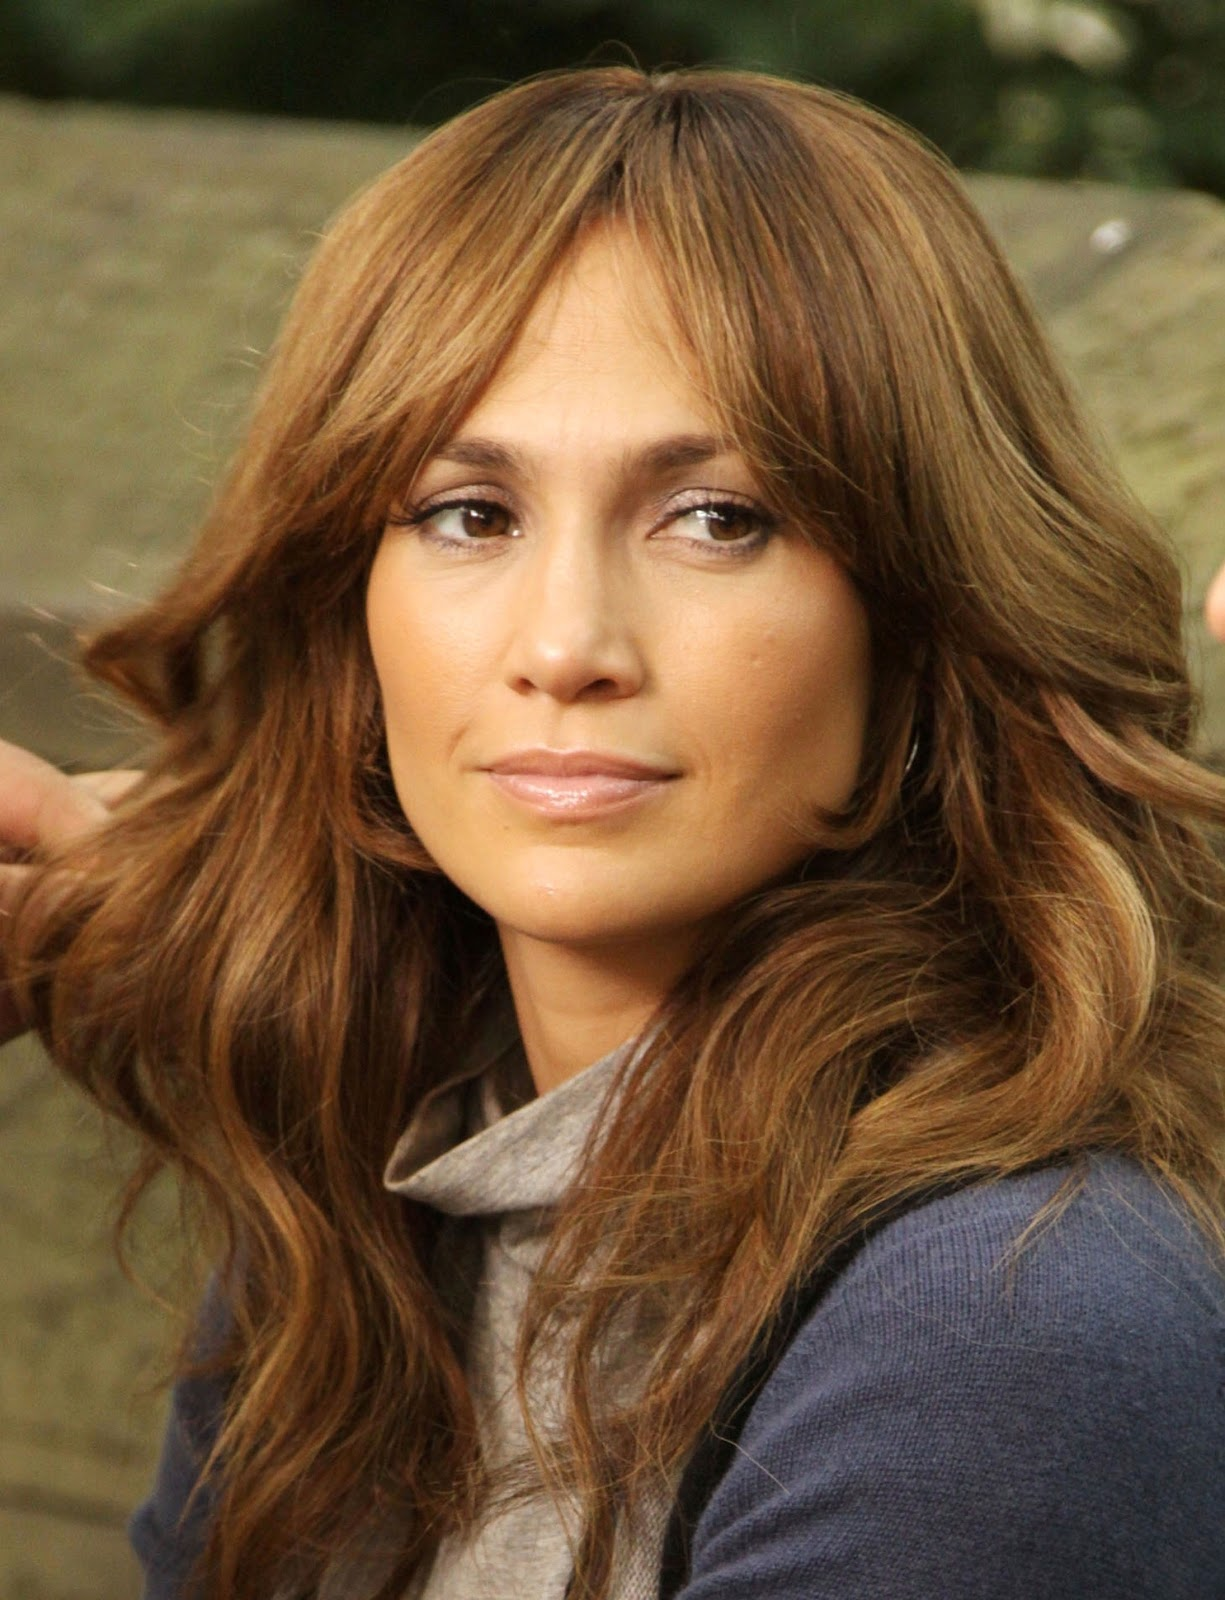 Astrology: Jennifer Lopez, date of birth: 1969/07/24